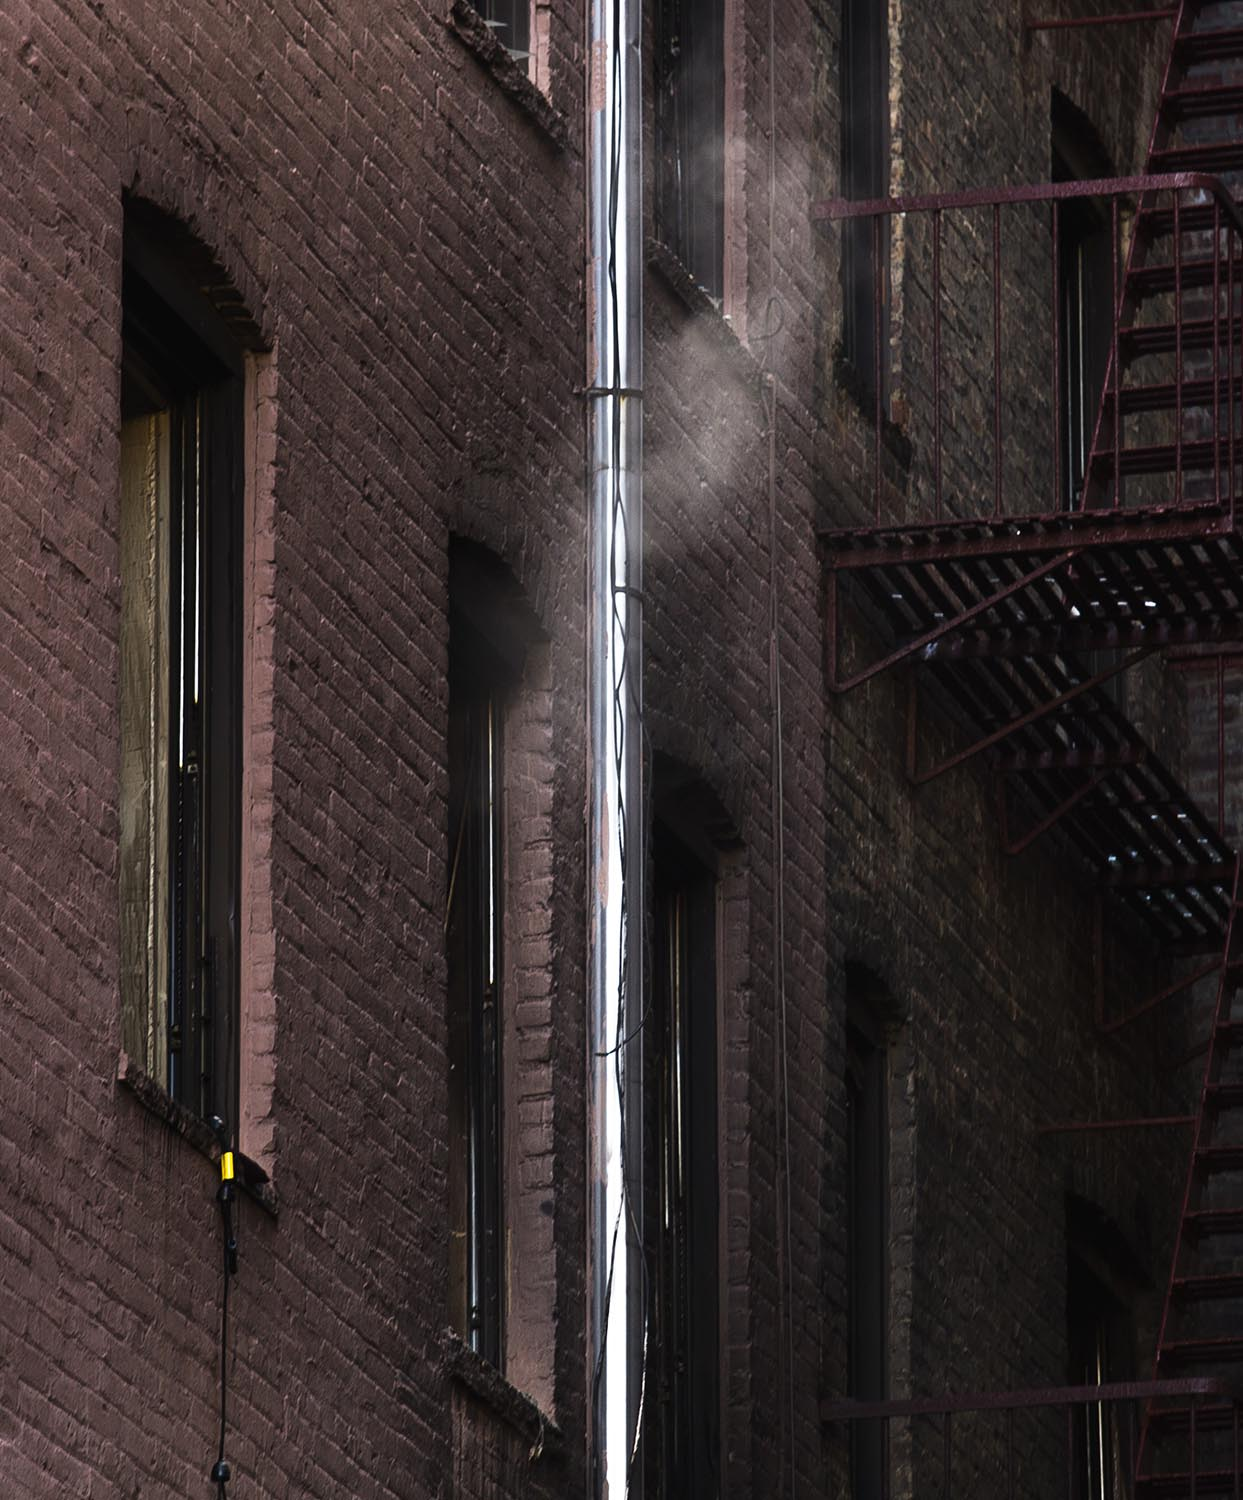 """<div class=""""meta image-caption""""><div class=""""origin-logo origin-image ap""""><span>AP</span></div><span class=""""caption-text"""">Smoke rises from a window of a burned apartment of the building where twelve people died in a fire on Thursday, on Friday, Dec. 29, 2017, in the Bronx borough of New York. (AP Photo/Andres Kudacki)</span></div>"""